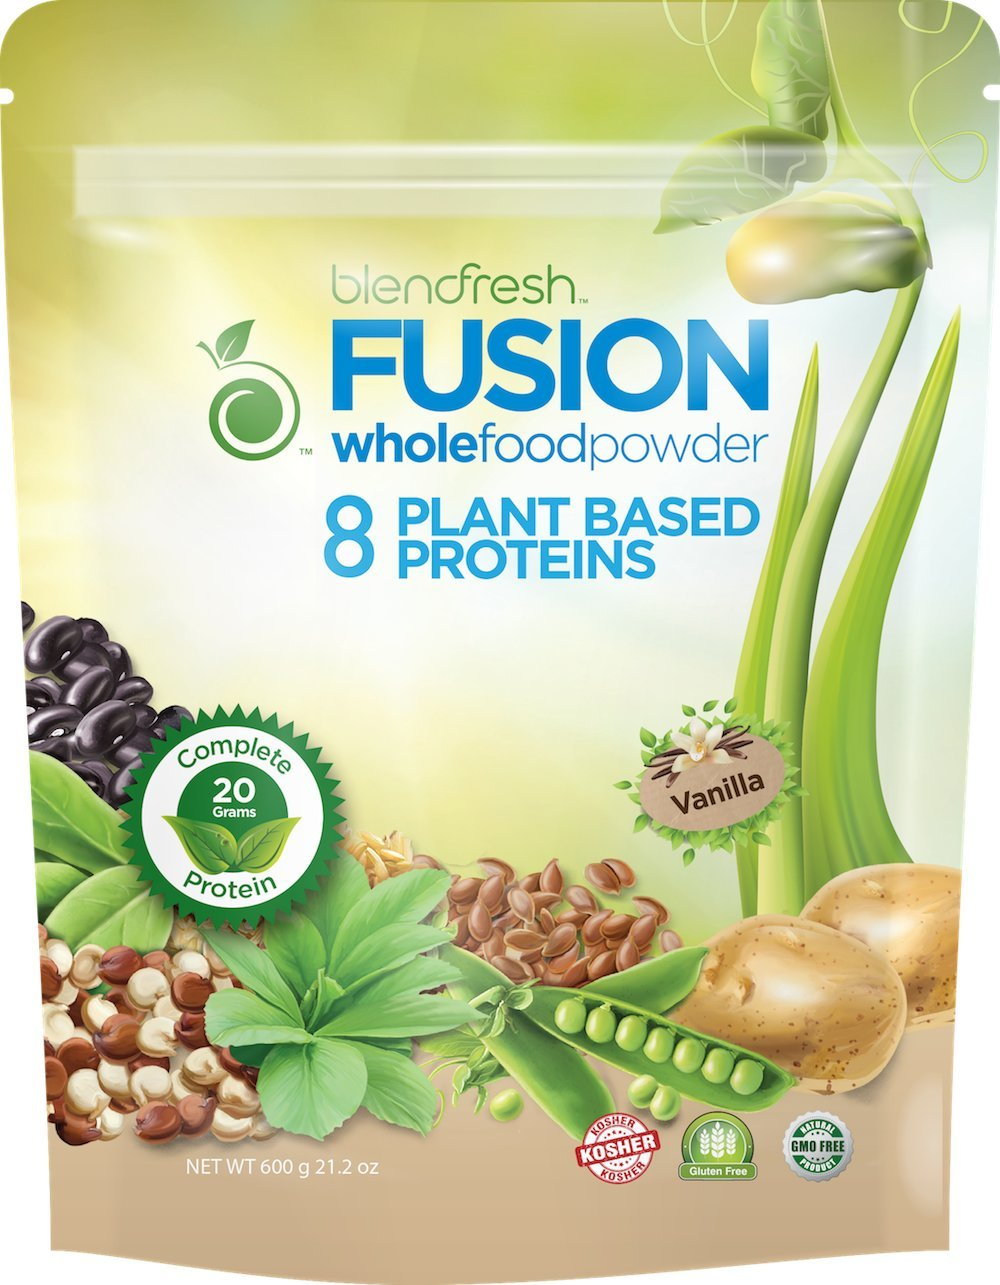 Plant-Based Vanilla Protein Sourced from 8 Different Plant Based Proteins 20 Grams Serving by Blendfresh.